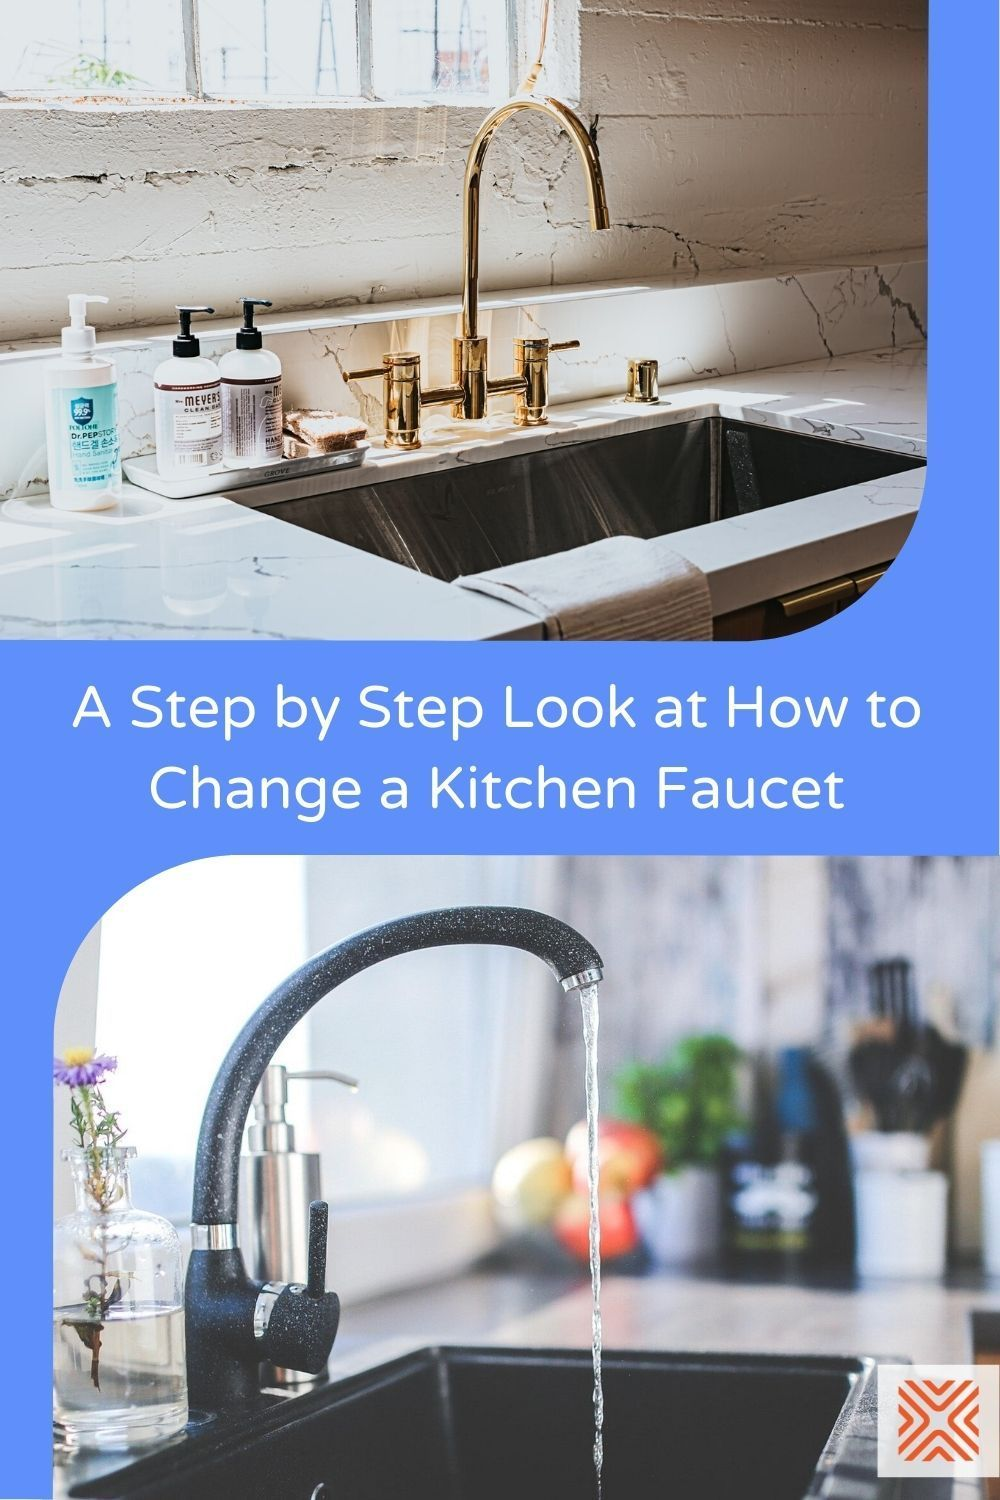 A Detailed Look At How To Change A Kitchen Faucet In 2020 Kitchen Faucet Home Improvement Faucet